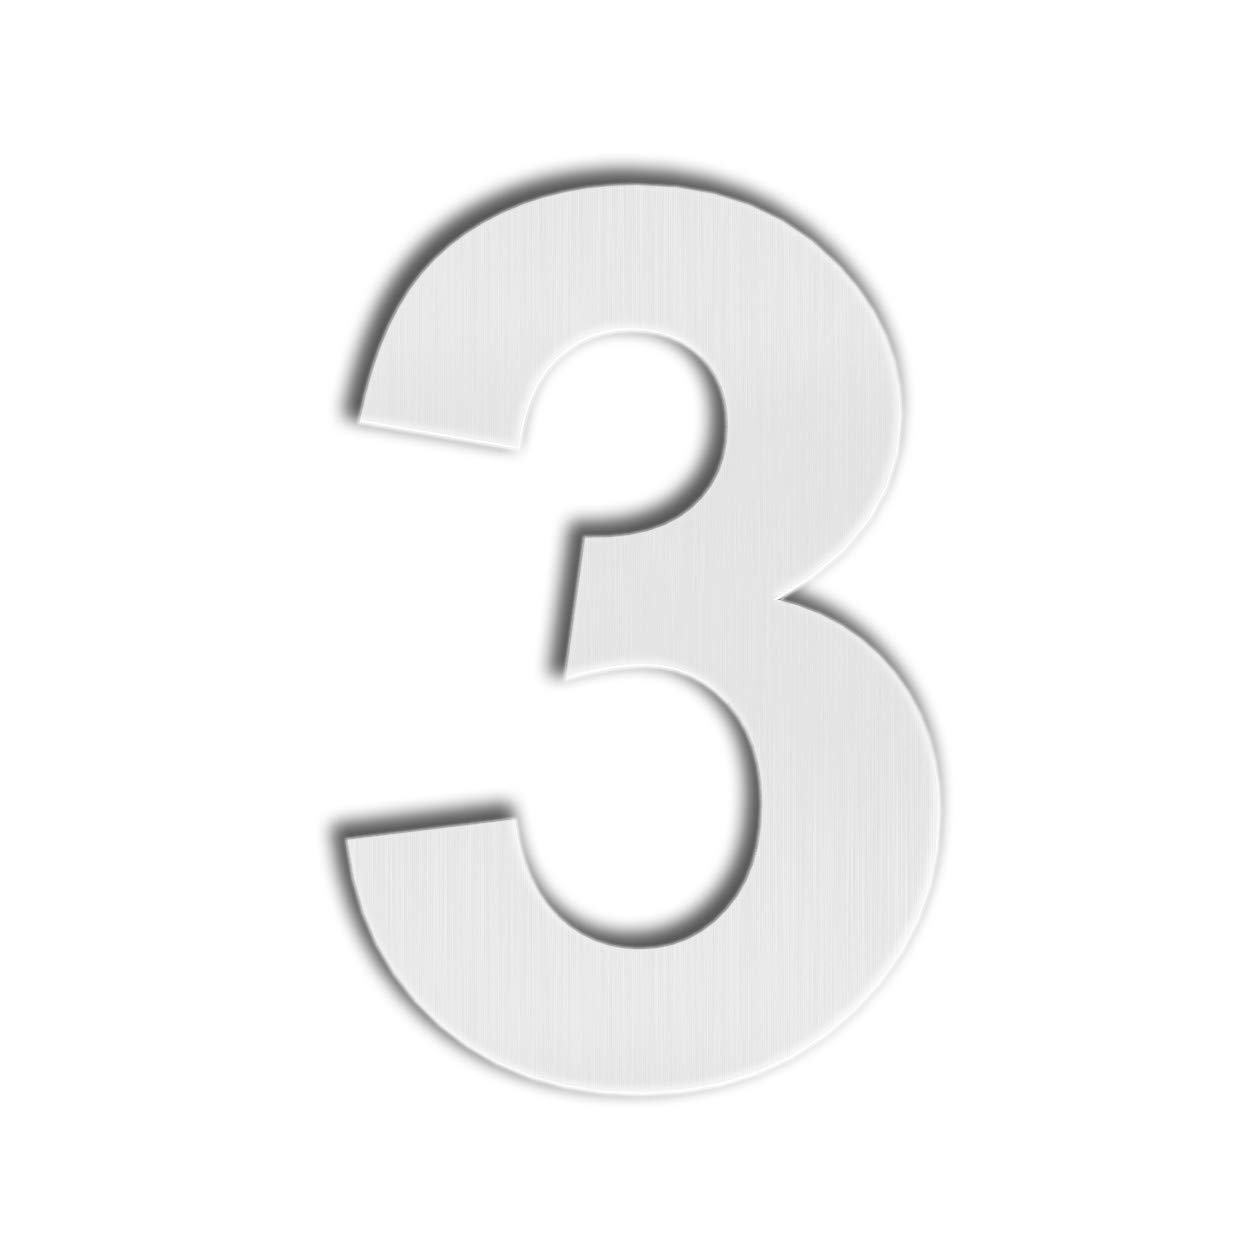 QT Modern House Number - SMALL 4 Inch - Brushed Stainless Steel (Number 3 Three), Floating Appearance, Easy to install and made of solid 304